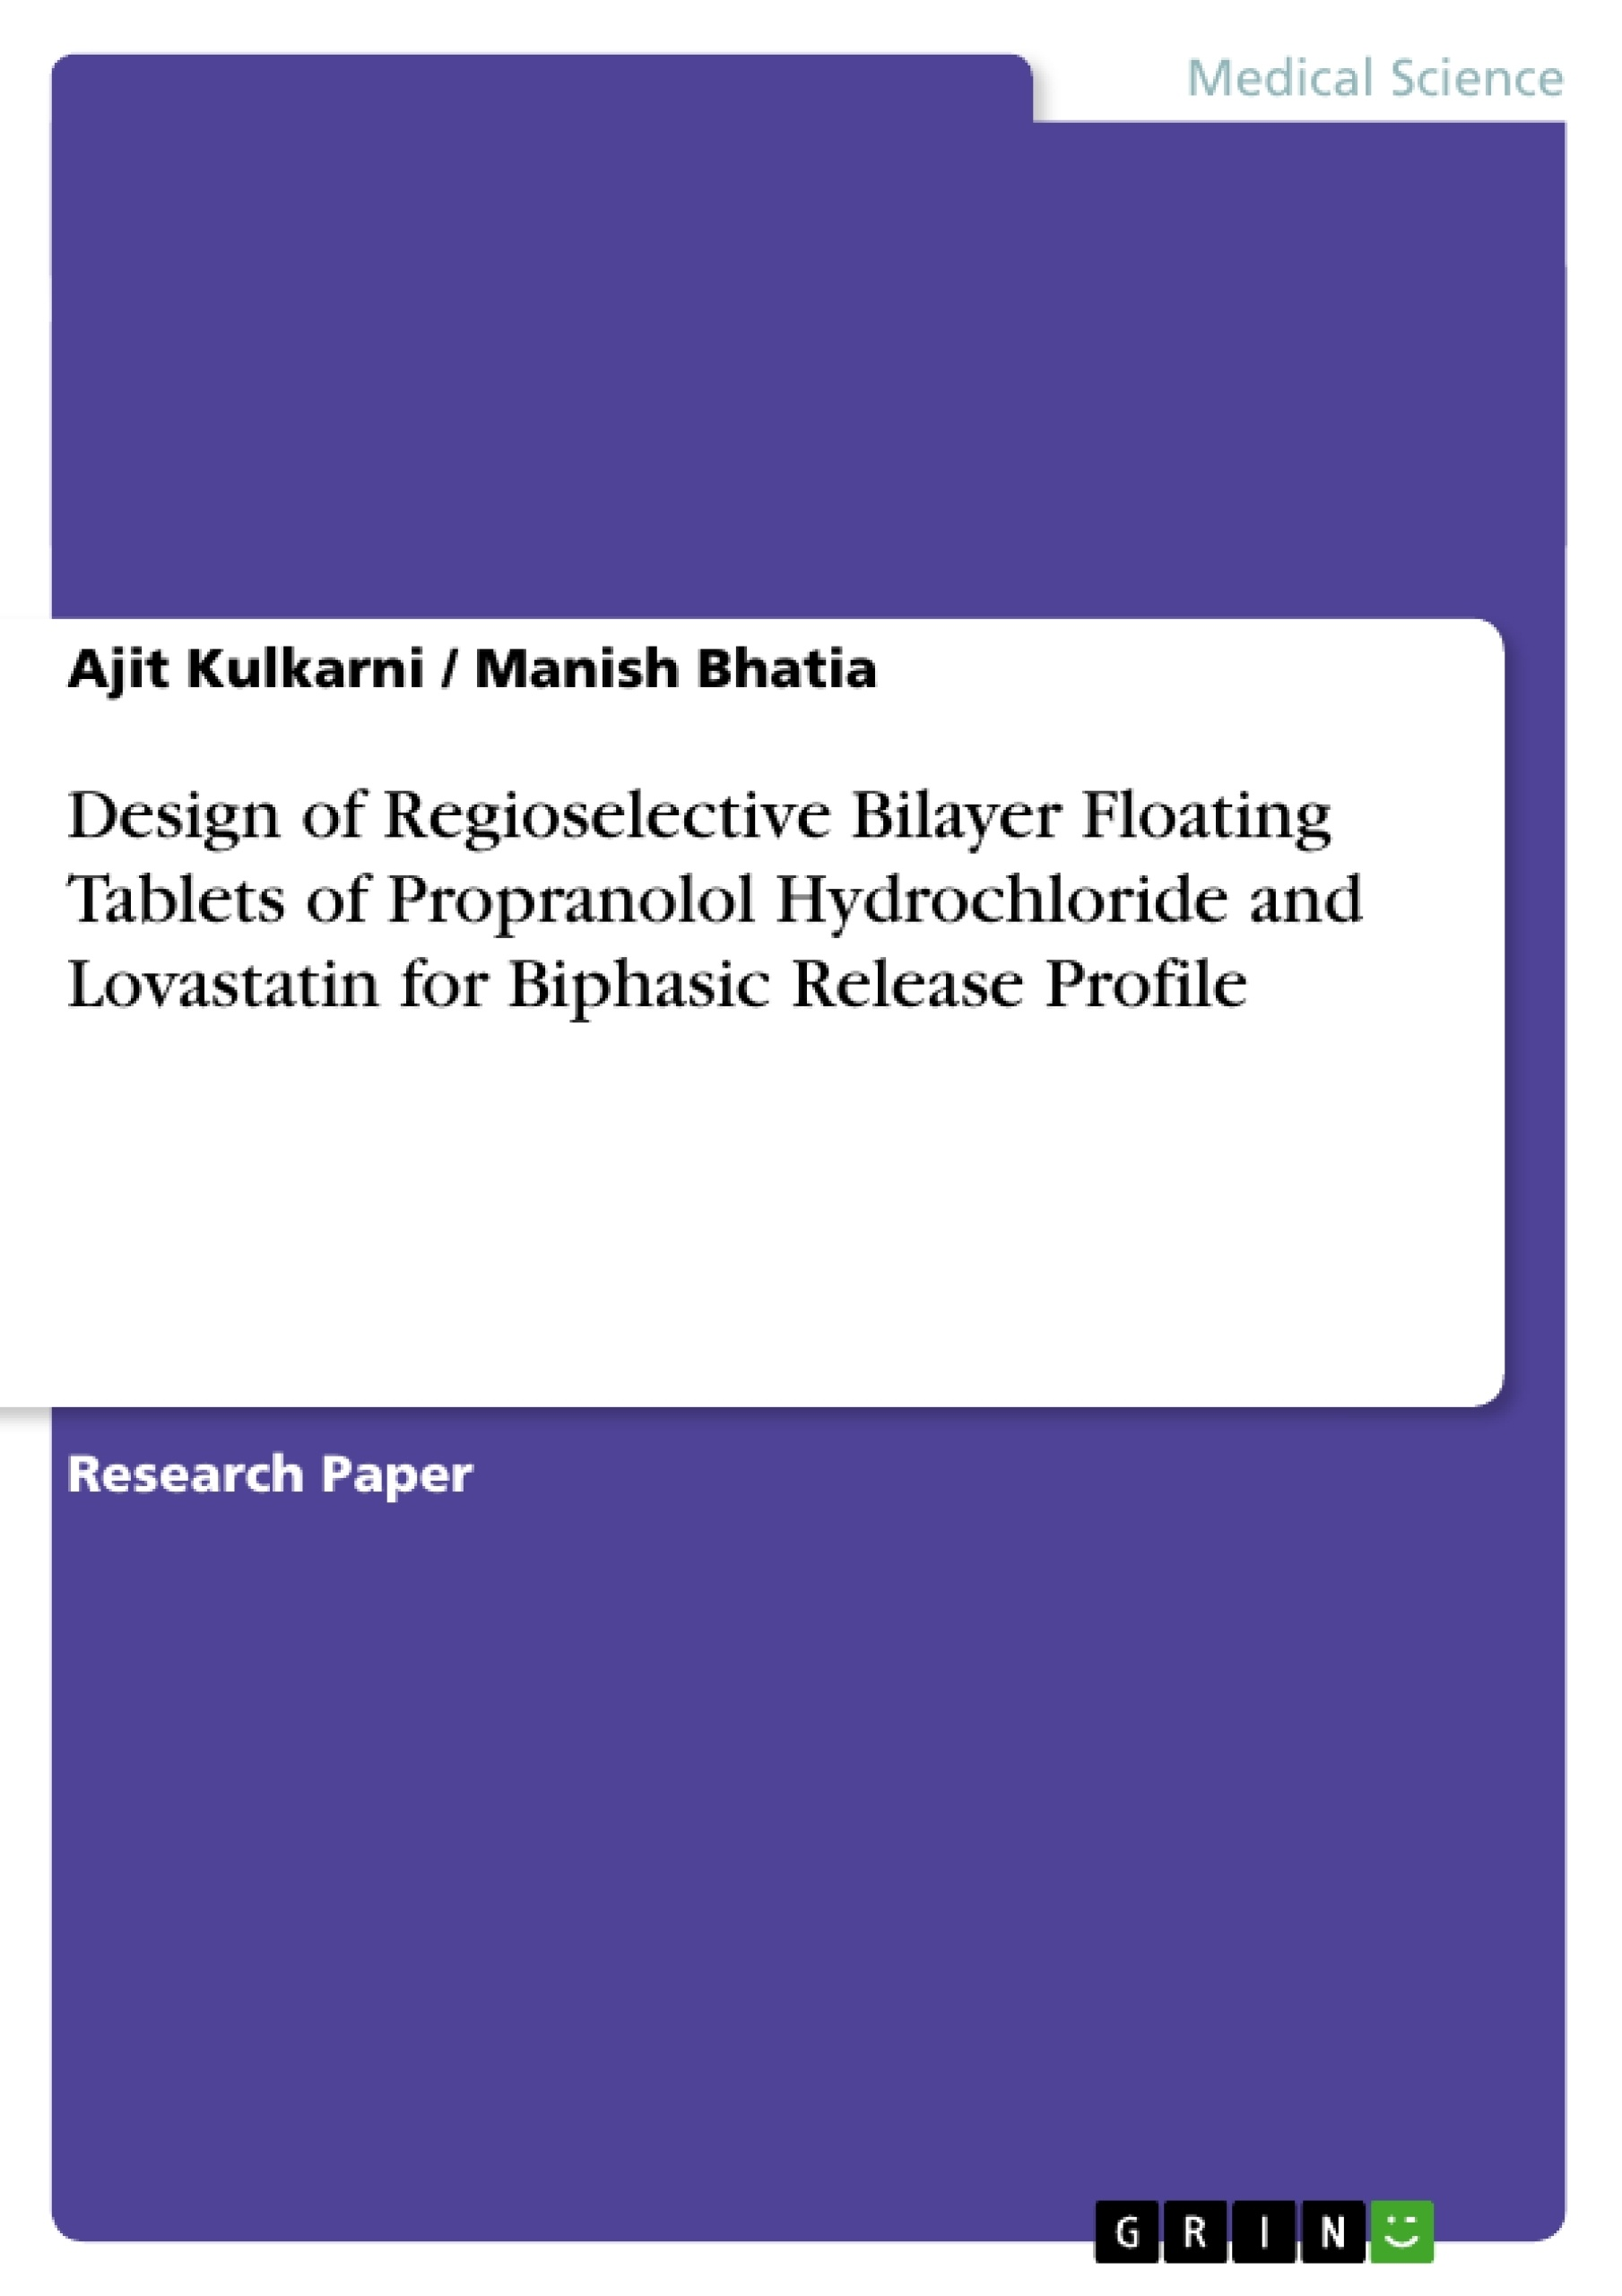 Title: Design of Regioselective Bilayer Floating Tablets of Propranolol Hydrochloride and Lovastatin for Biphasic Release Profile